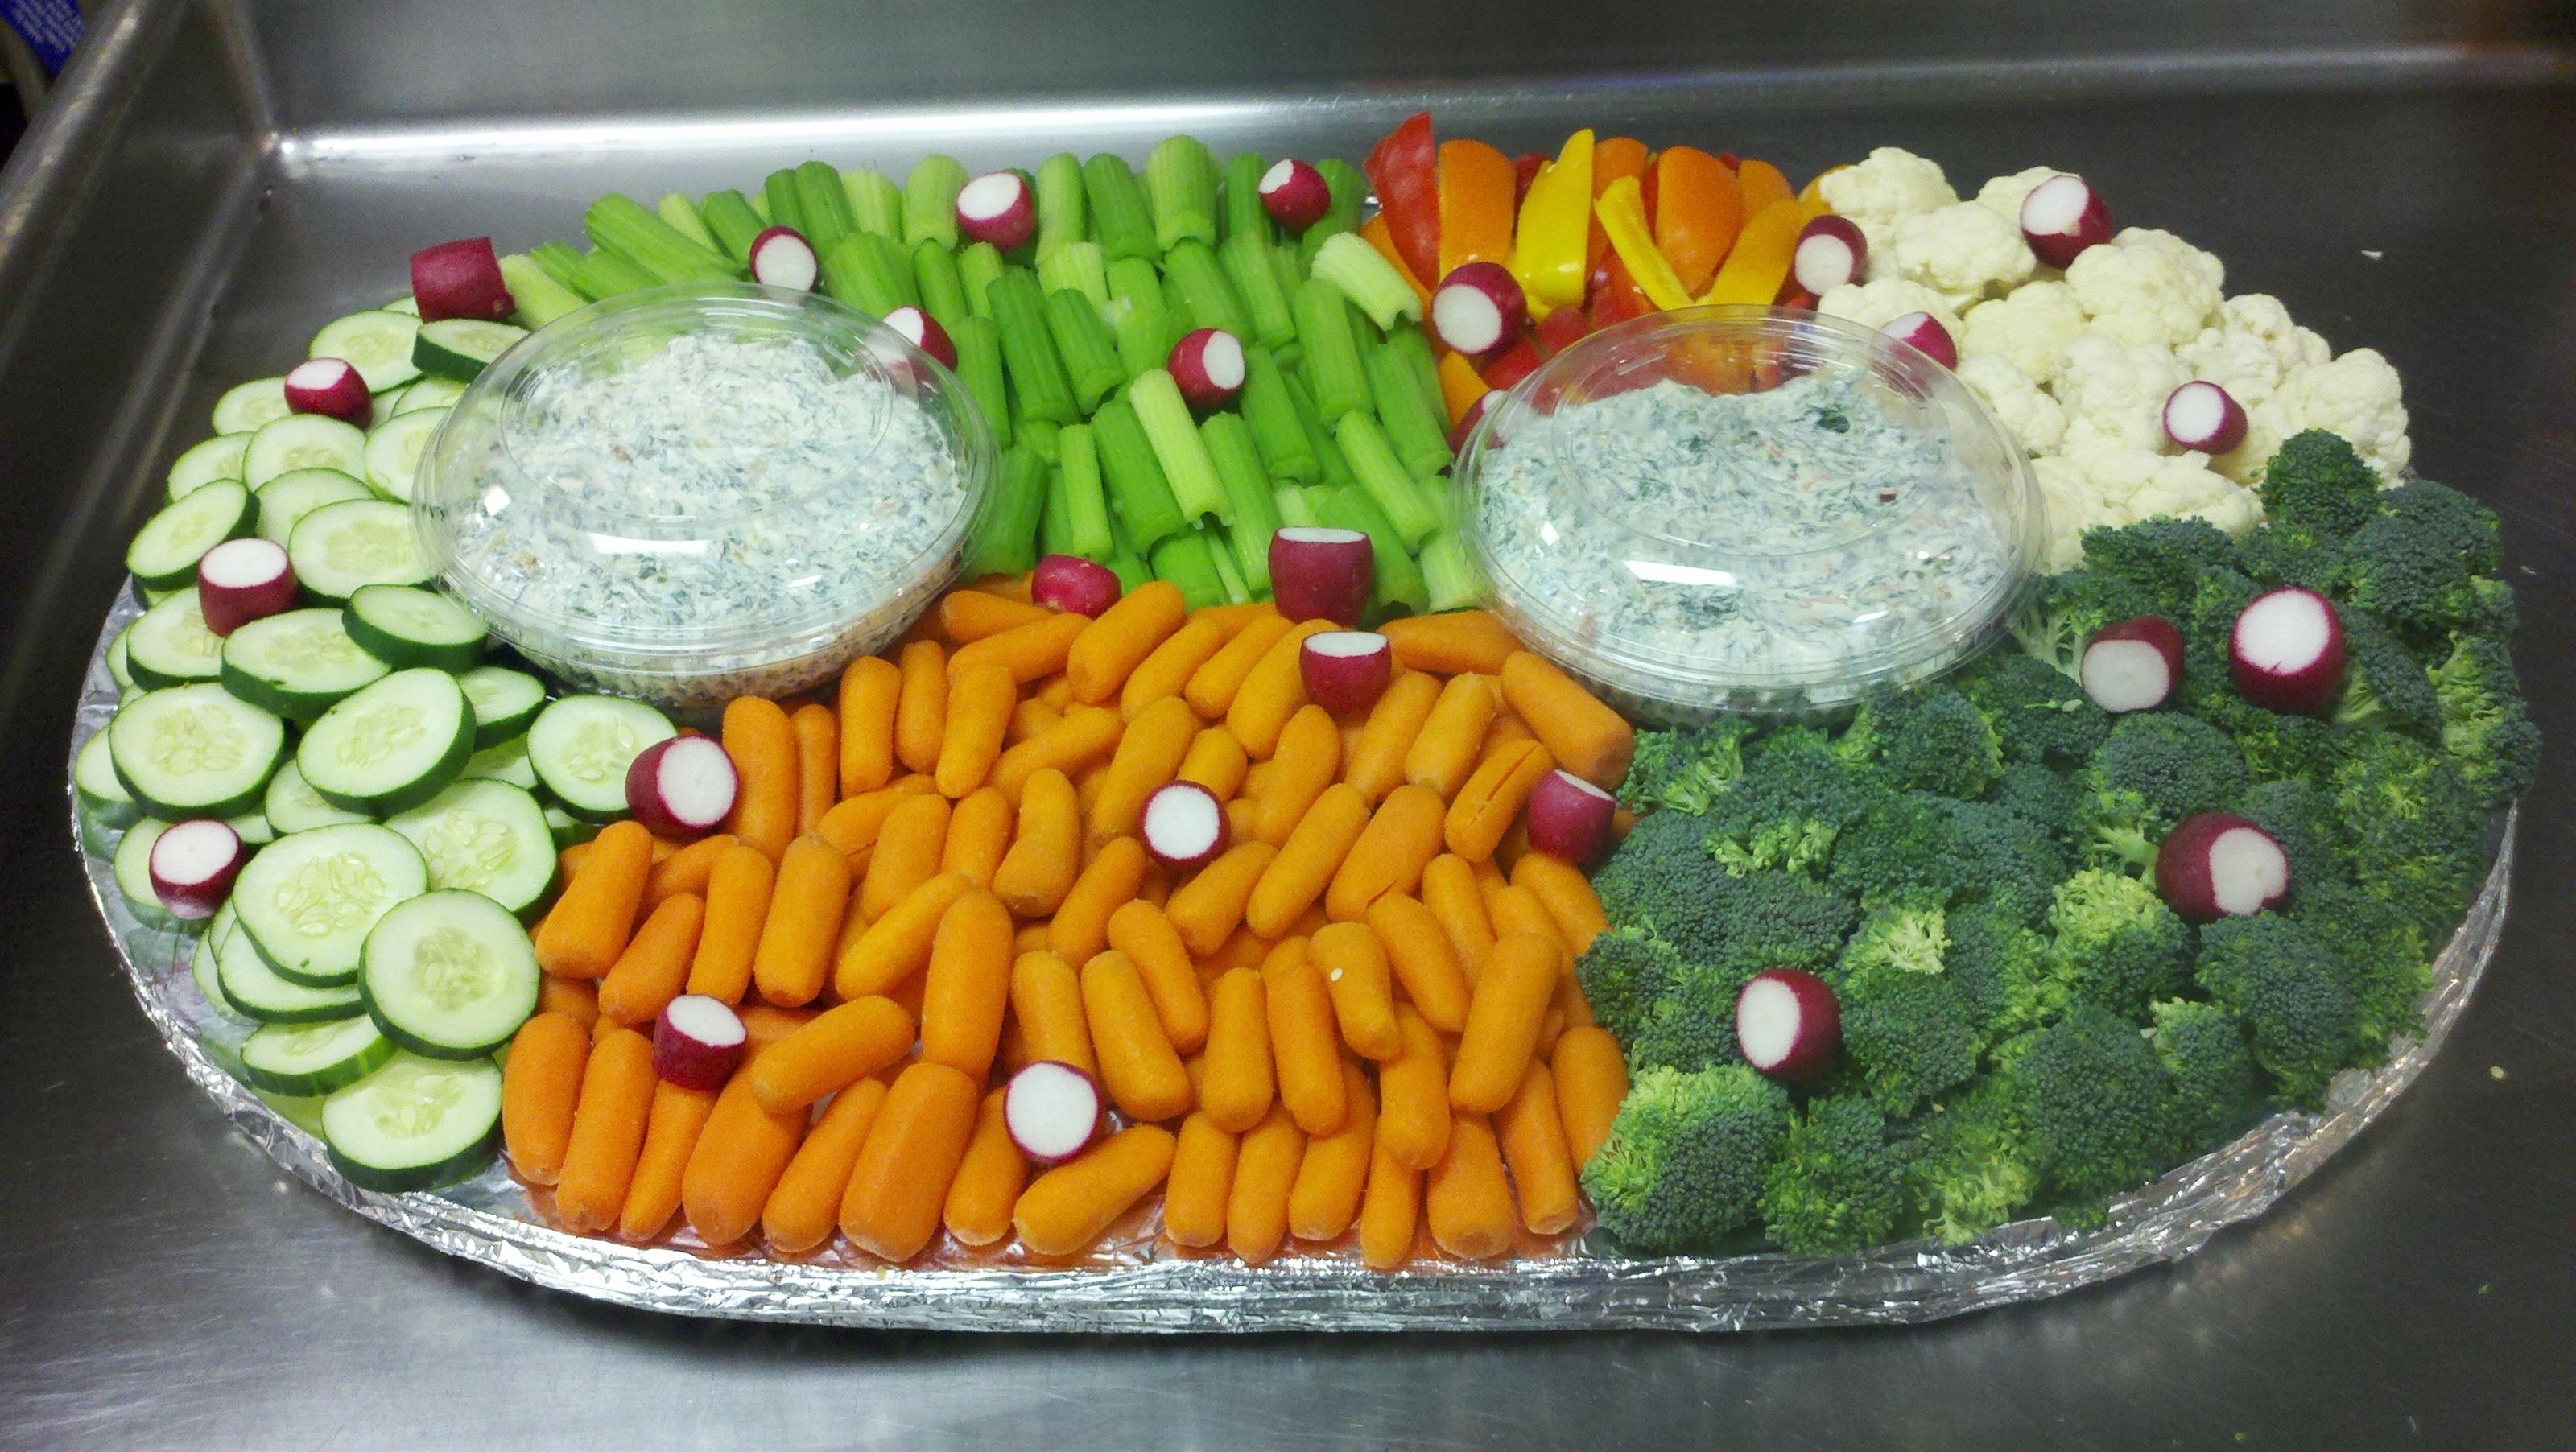 Tray of assorted vegetables with dips